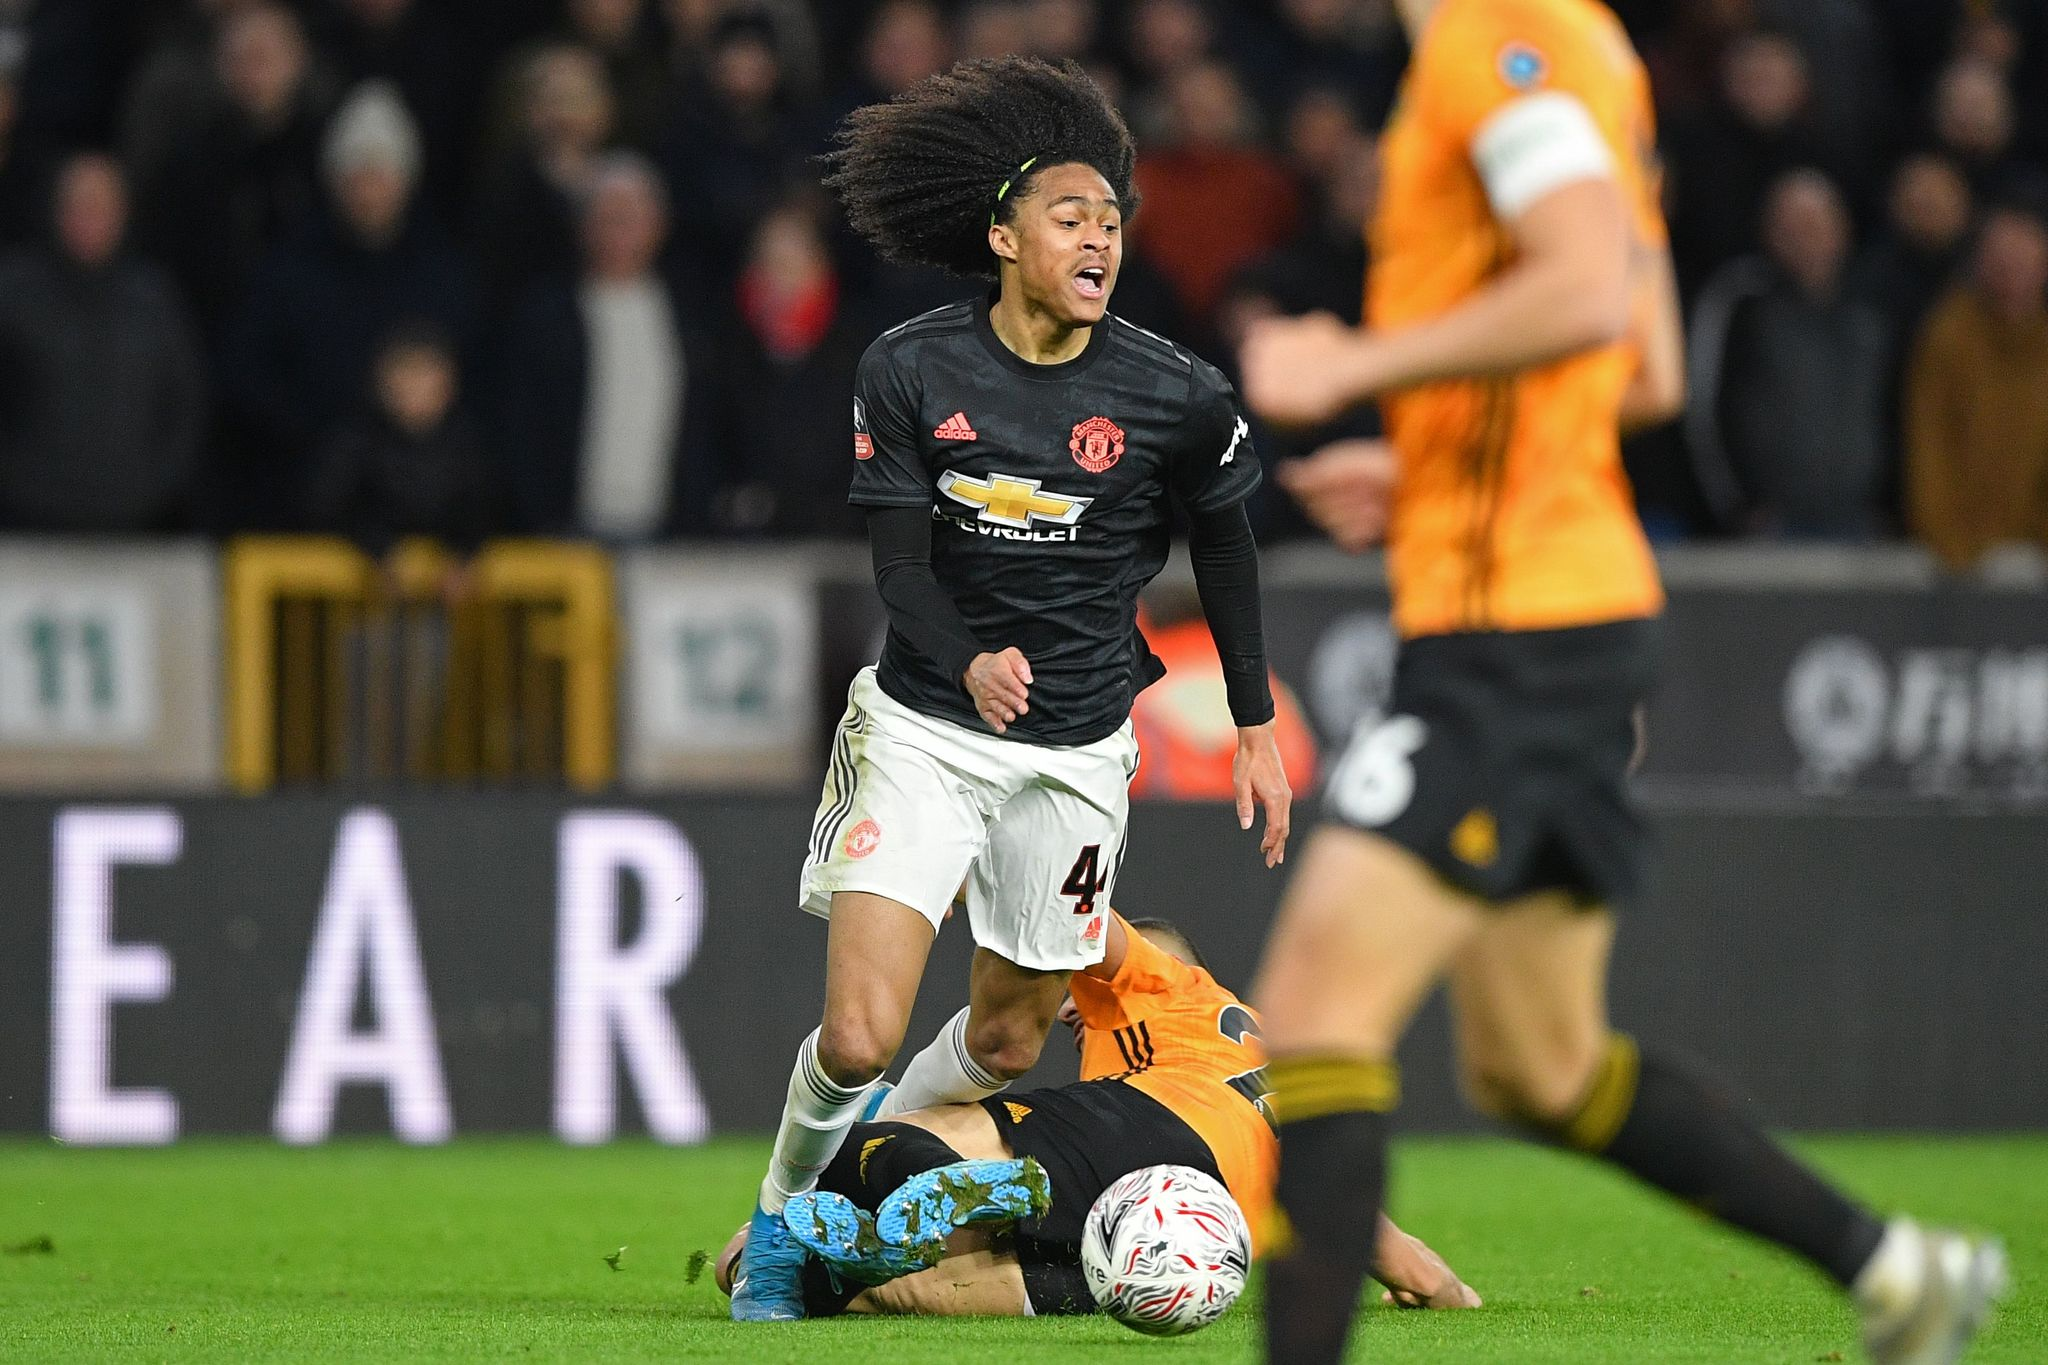 Wolverhampton Wanderers Moroccan midfielder Romain Saiss is booked for this foul on Manchester Uniteds Dutch midfielder <HIT>Tahith</HIT><HIT>Chong</HIT> (L) during the FA Cup third round football match between Wolverhampton Wanderers and Manchester United at the Molineux stadium in Wolverhampton, central England on January 4, 2020. (Photo by Justin TALLIS / AFP) / RESTRICTED TO EDITORIAL USE. No use with unauthorized audio, video, data, fixture lists, club/league logos or live services. Online in-match use limited to 120 images. An additional 40 images may be used in extra time. No video emulation. Social media in-match use limited to 120 images. An additional 40 images may be used in extra time. No use in betting publications, games or single club/league/player publications. /